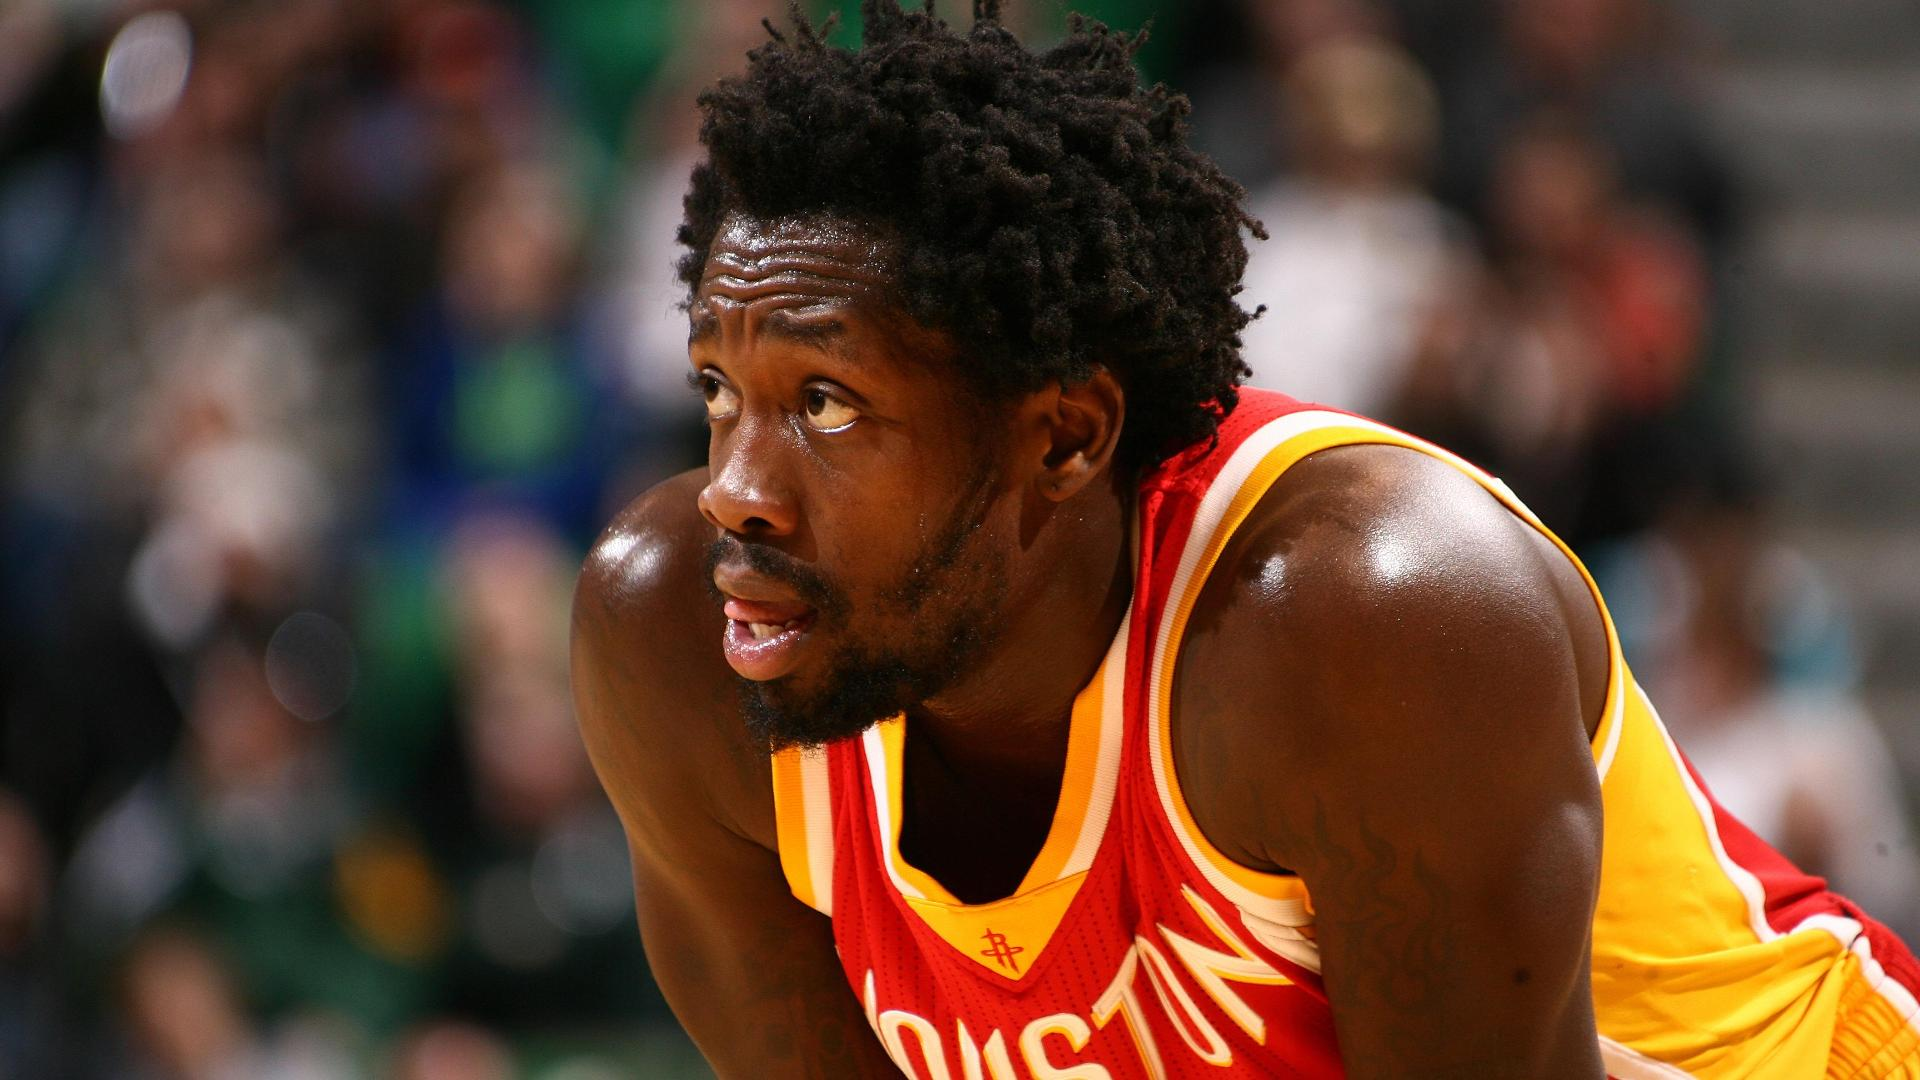 http://a.espncdn.com/media/motion/2015/0401/dm_150331_nba_broussard_beverley_surgery303/dm_150331_nba_broussard_beverley_surgery303.jpg